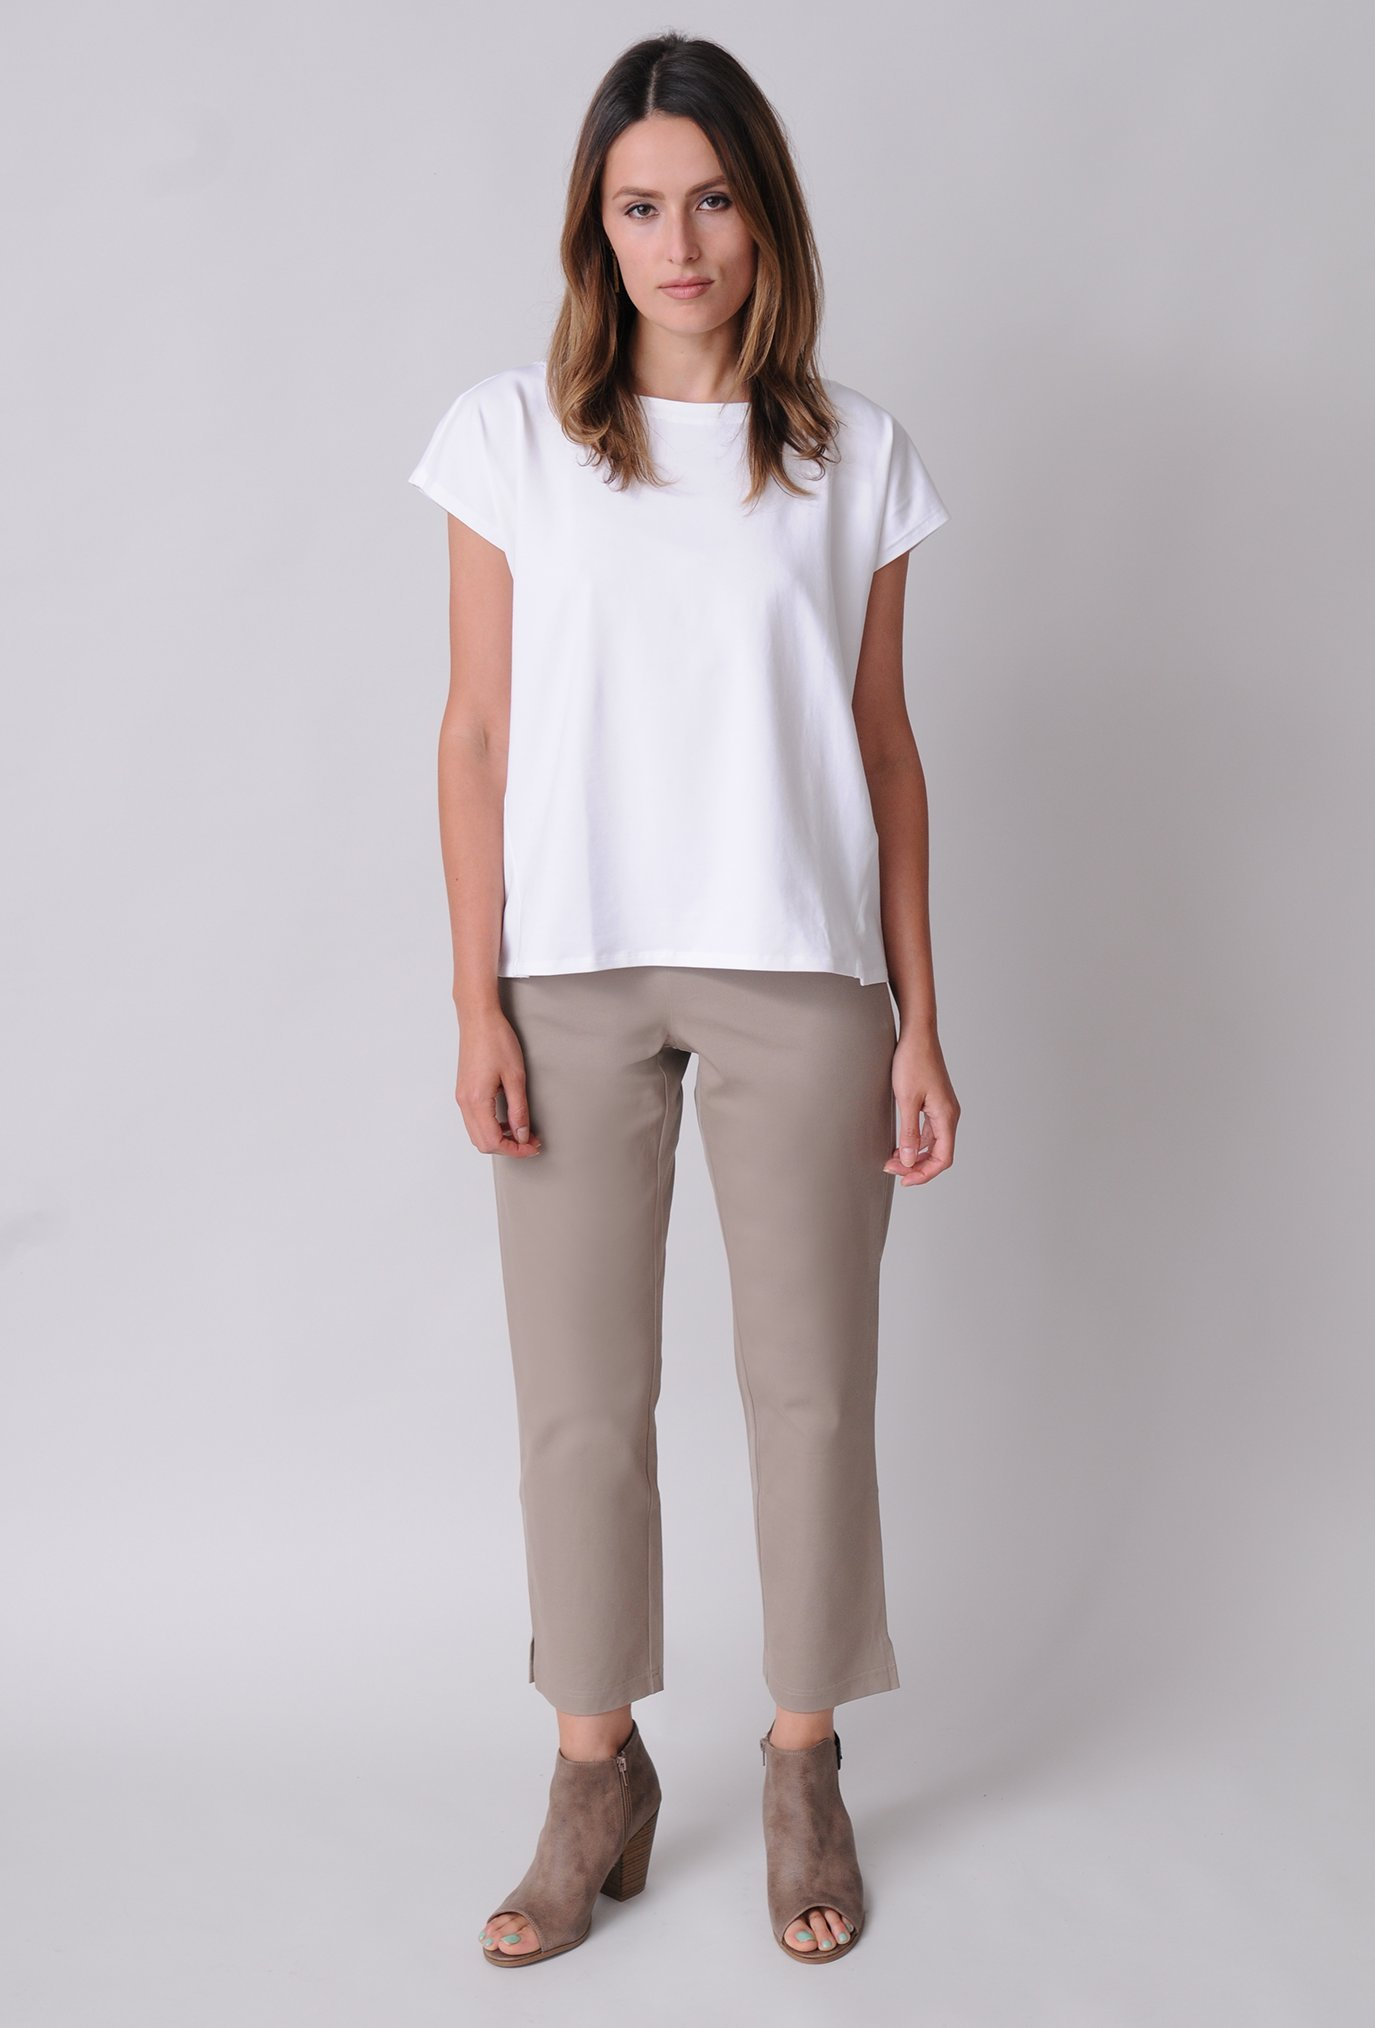 Eileen Fisher Organic Cotton Stretch Twill Slim Ankle Pant